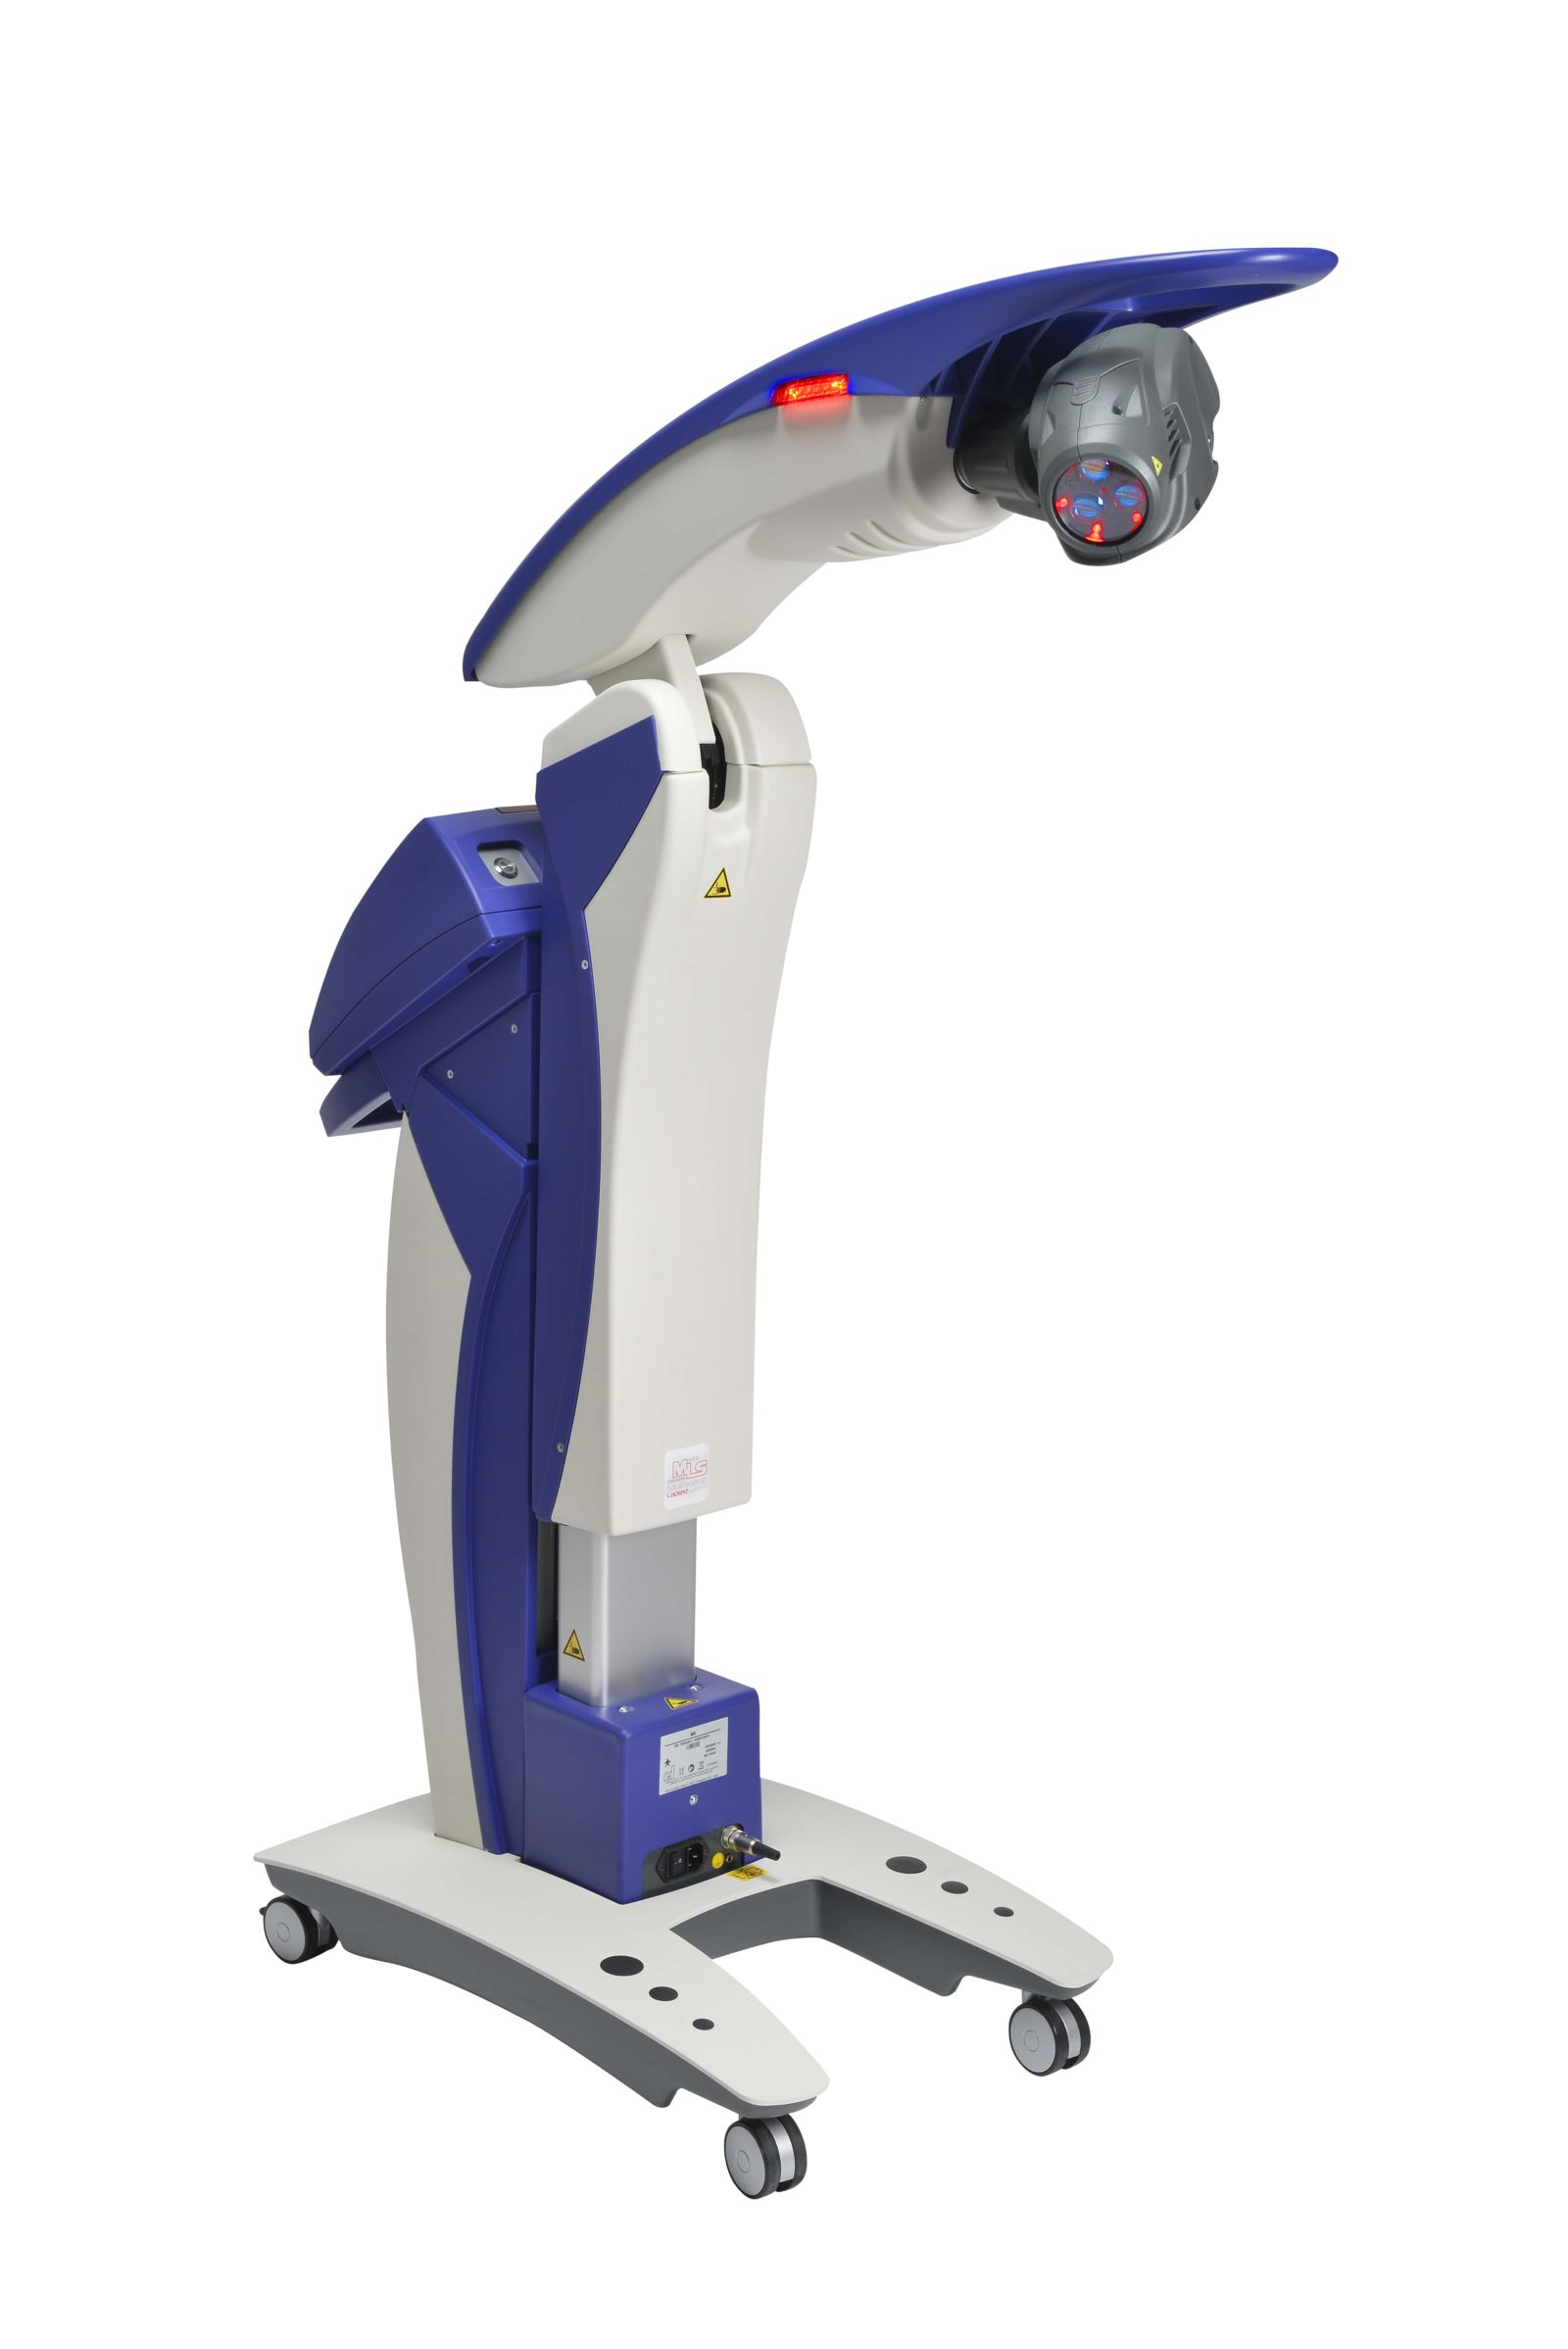 mls laser machine blue and white with red light